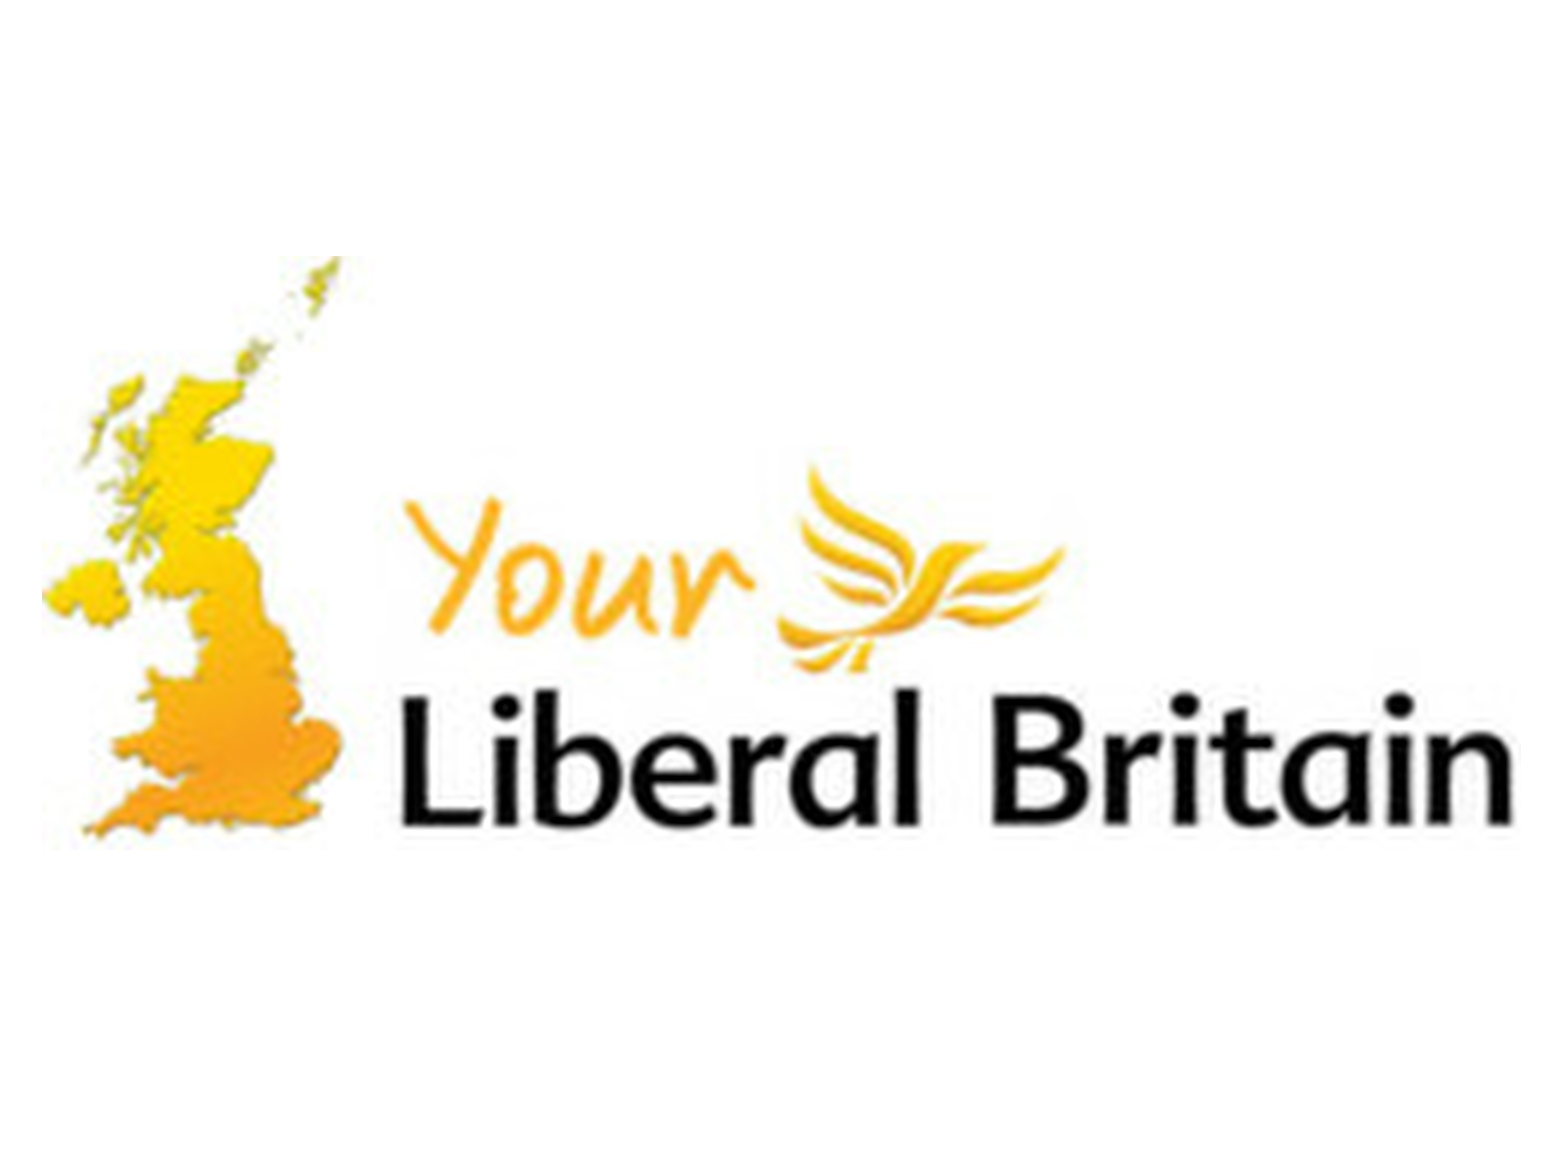 Your Liberal Britain events: Launchpad London and North